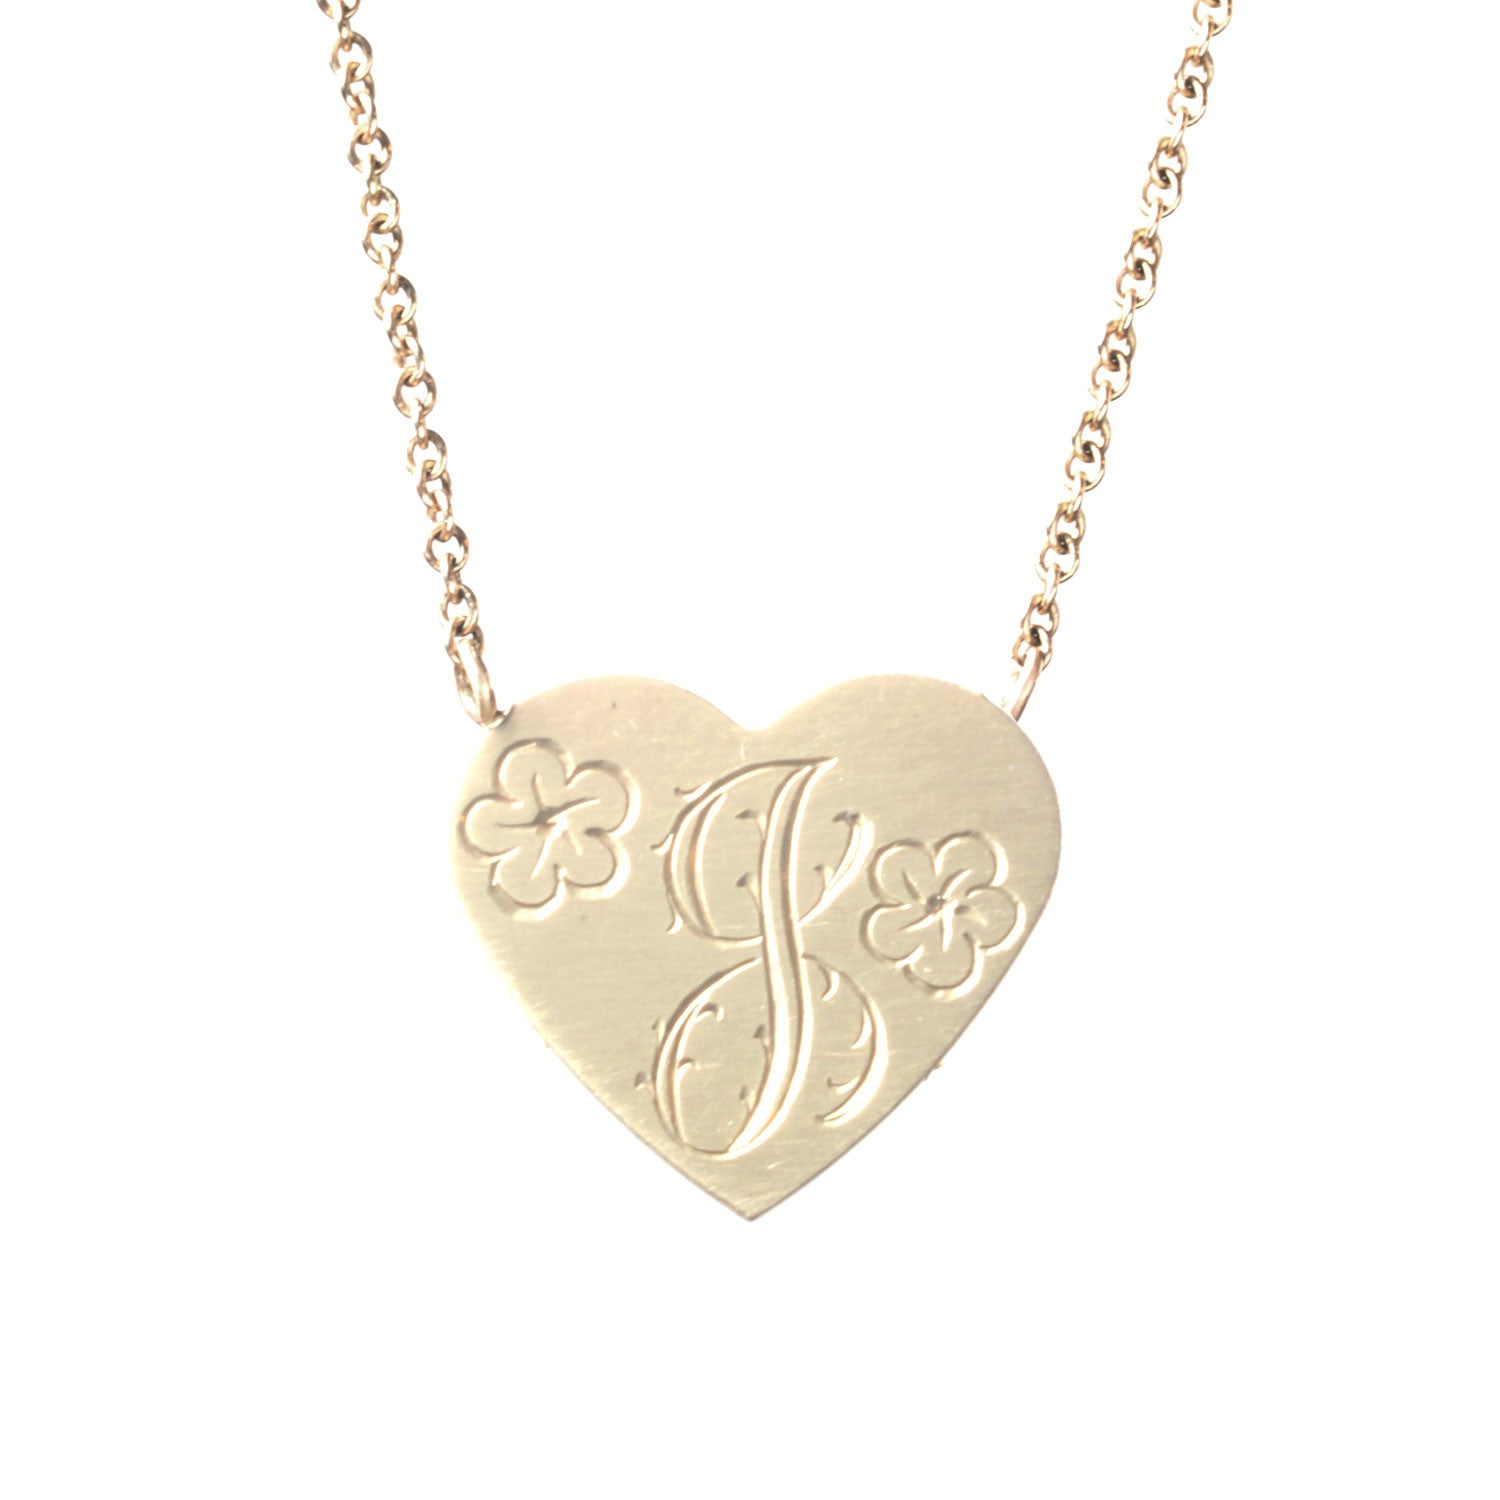 necklace en jewellery aemresponsive products fossil jewelry heart pdpzoom us main sku